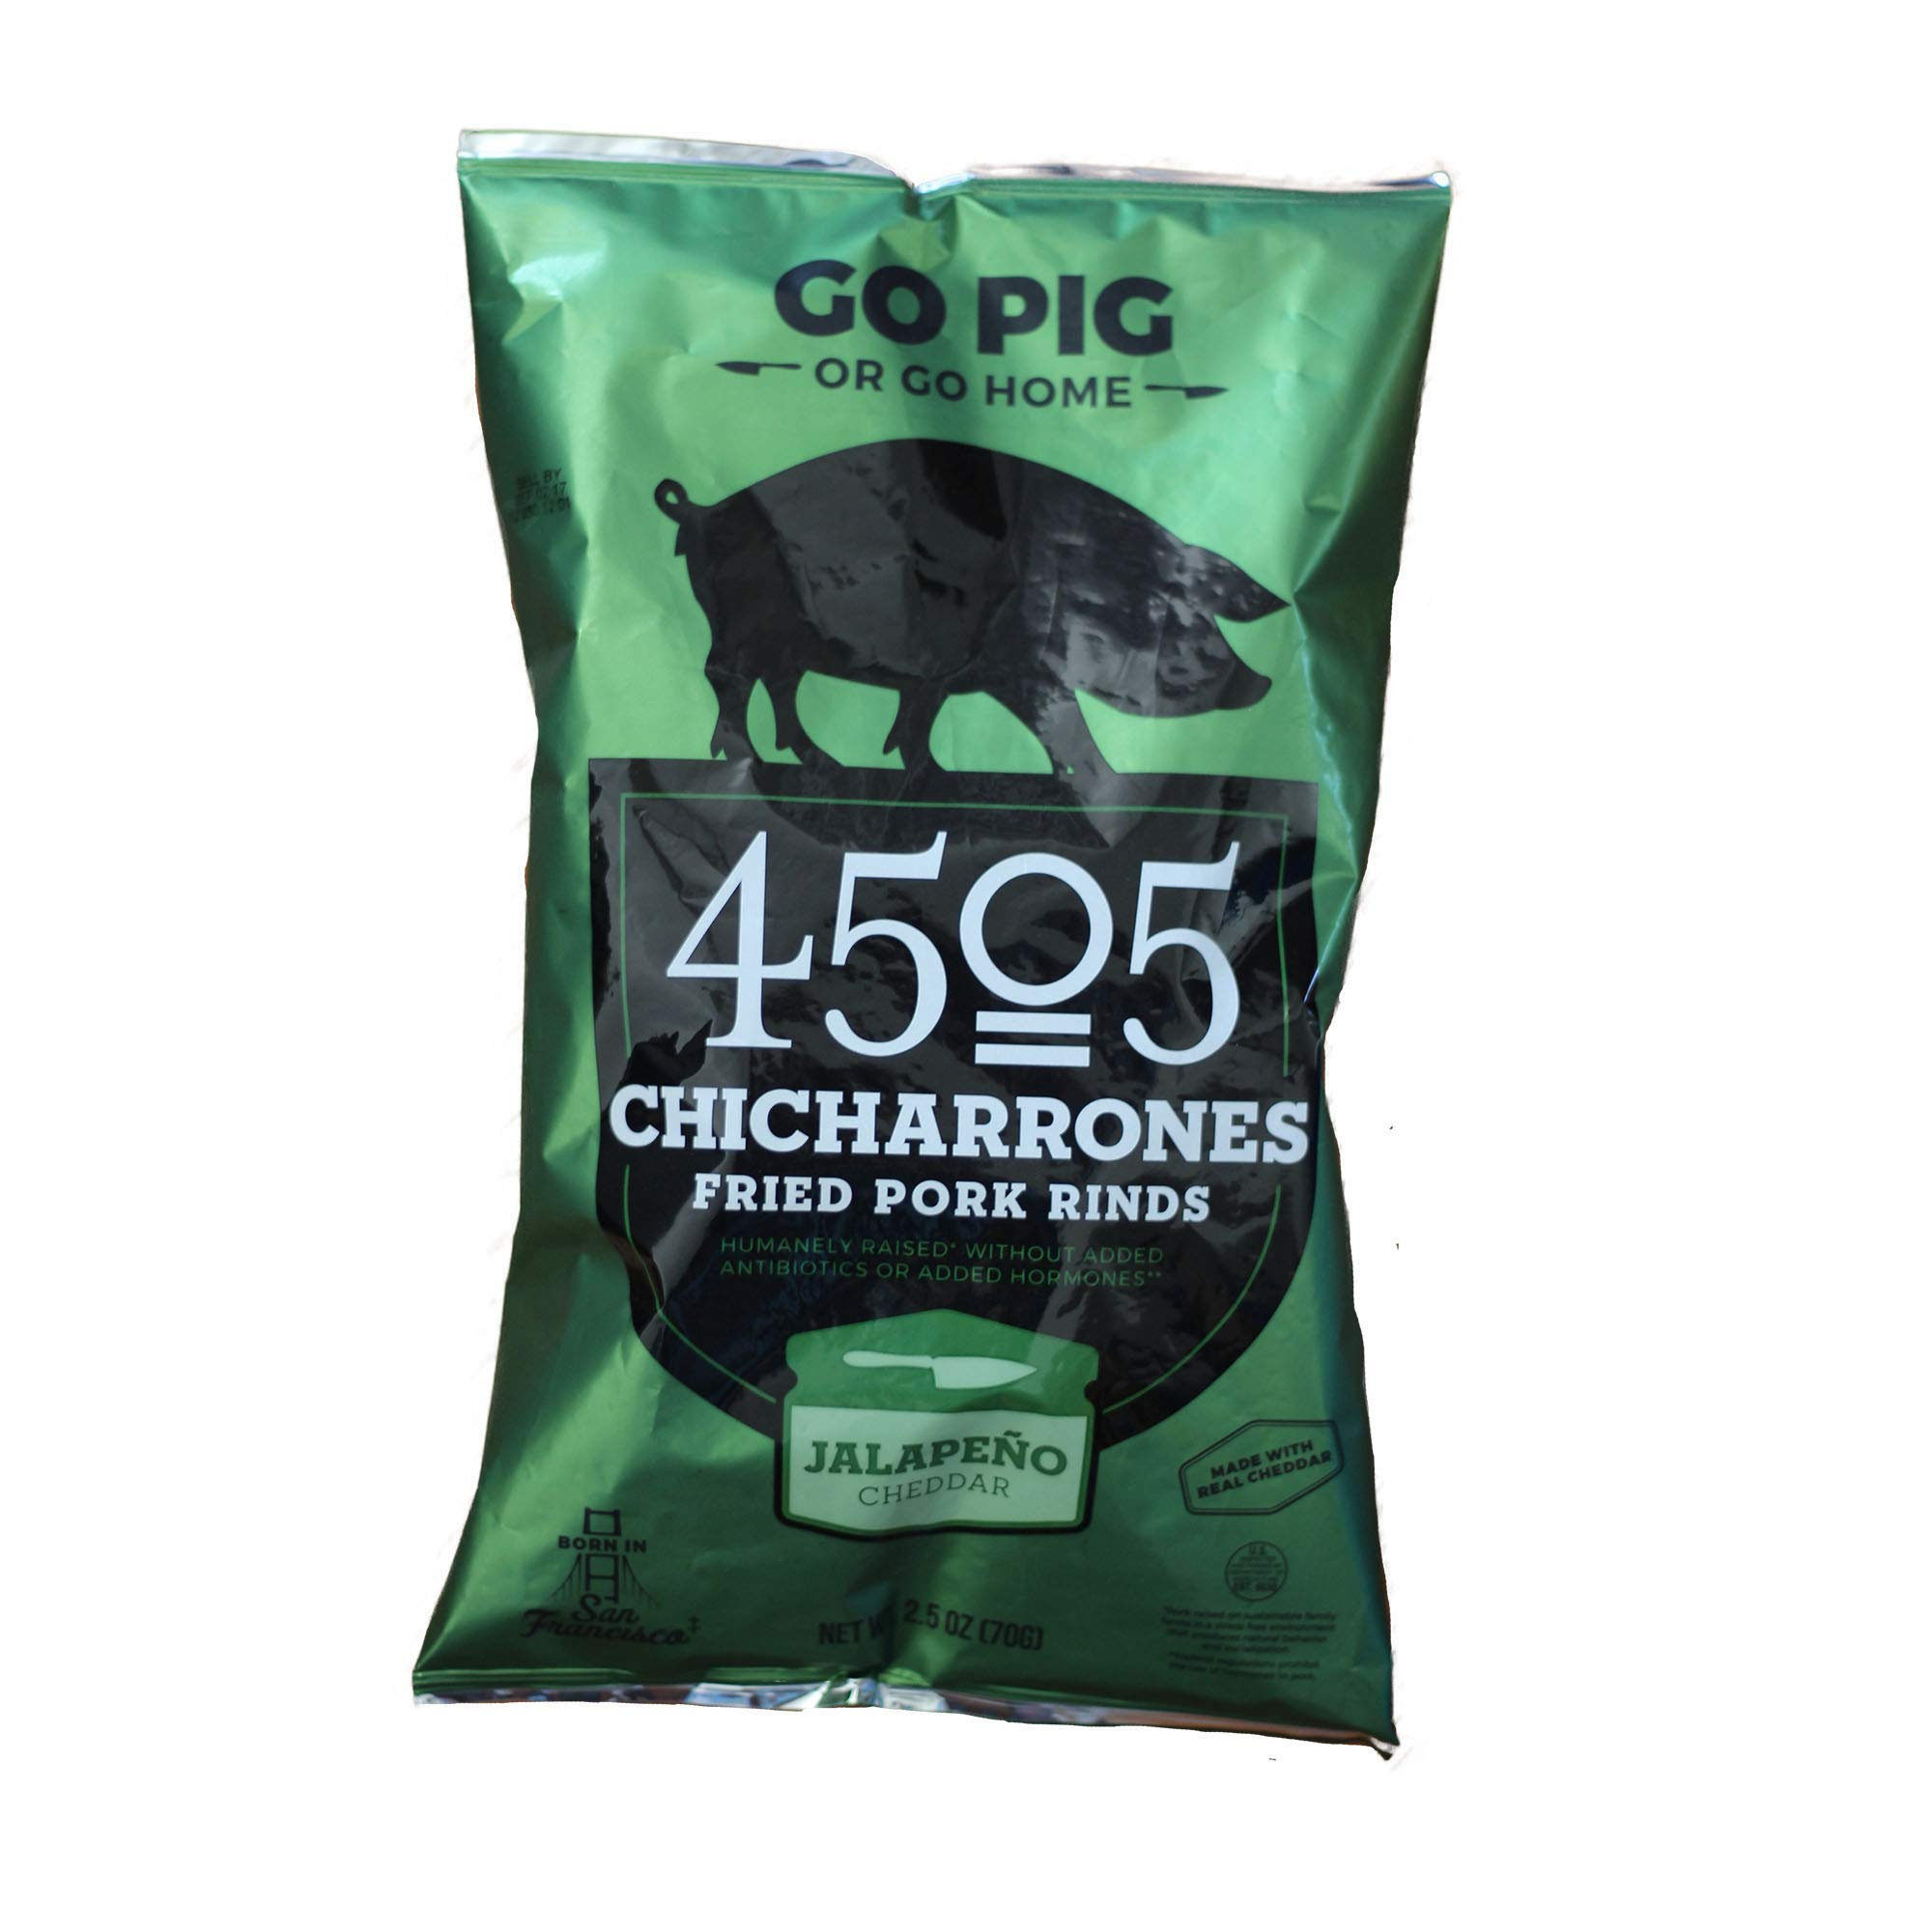 4505 Meats Chicharrones Fried Pork Rinds, Jalapeno Cheddar, 2.5 Ounce, 6 Count by 4505 Meats (Image #2)